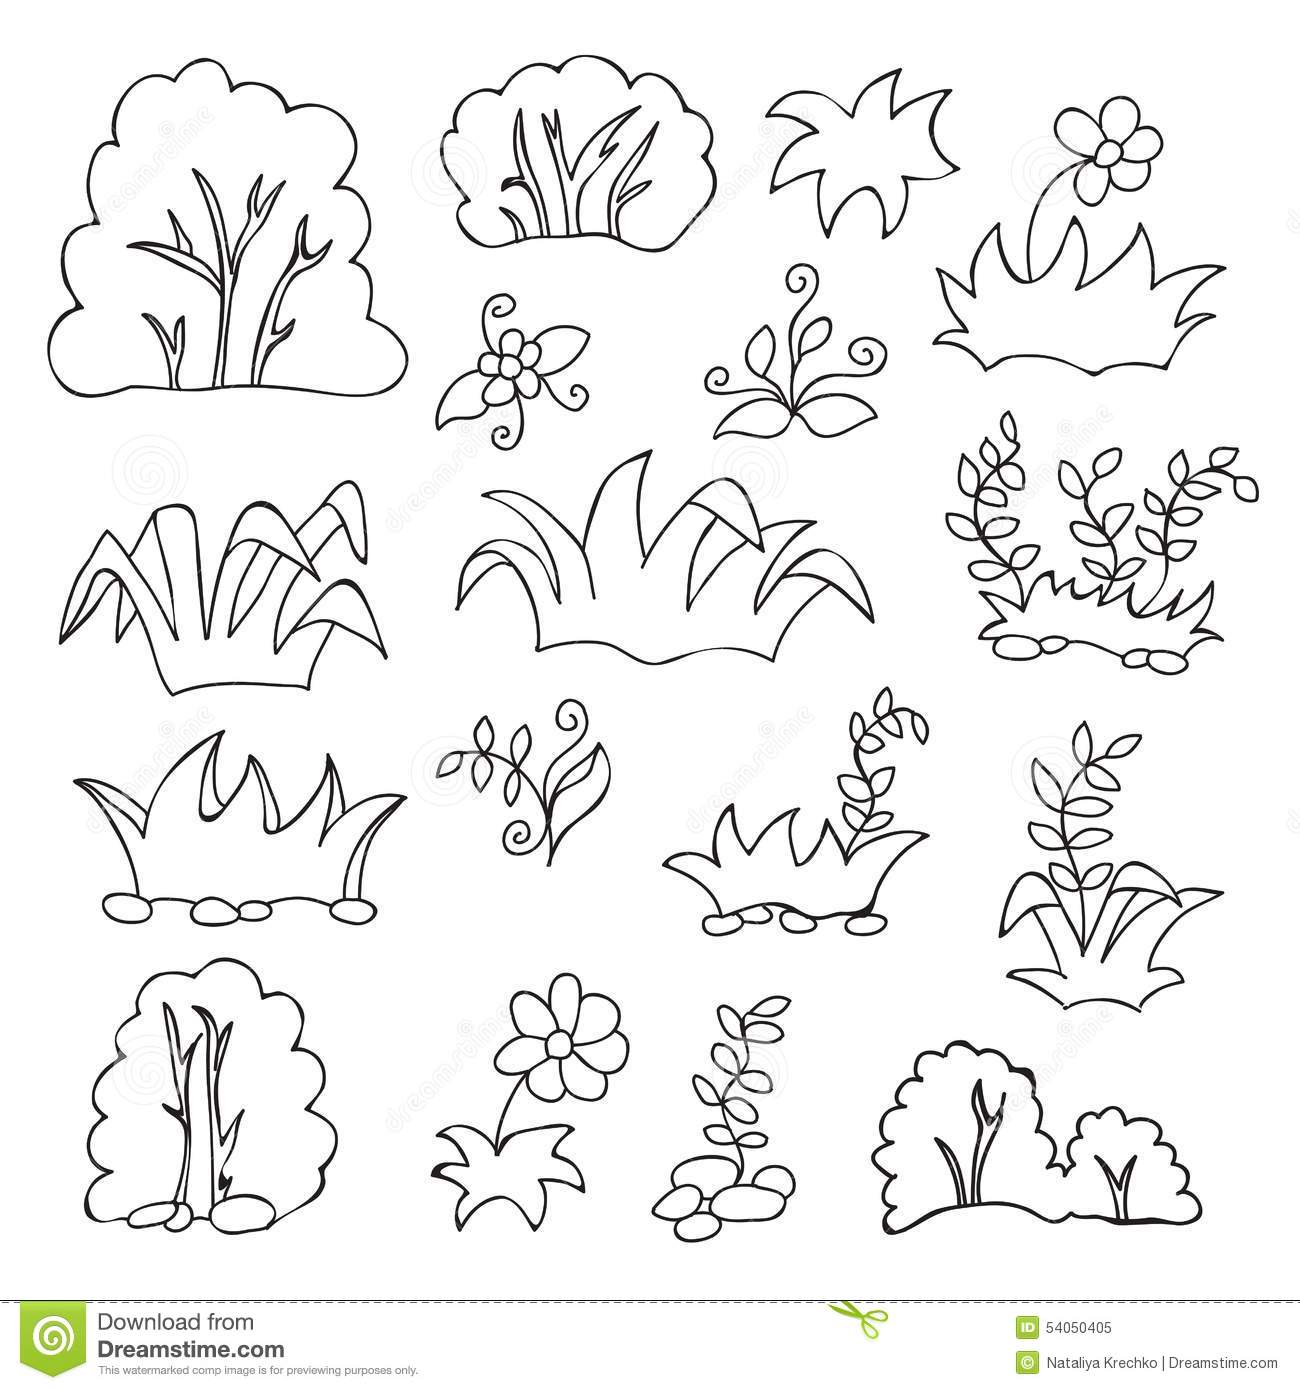 Coloring pages grass - Grass And Flowers Cartoon Coloring Book For Kids Royalty Free Stock Photo